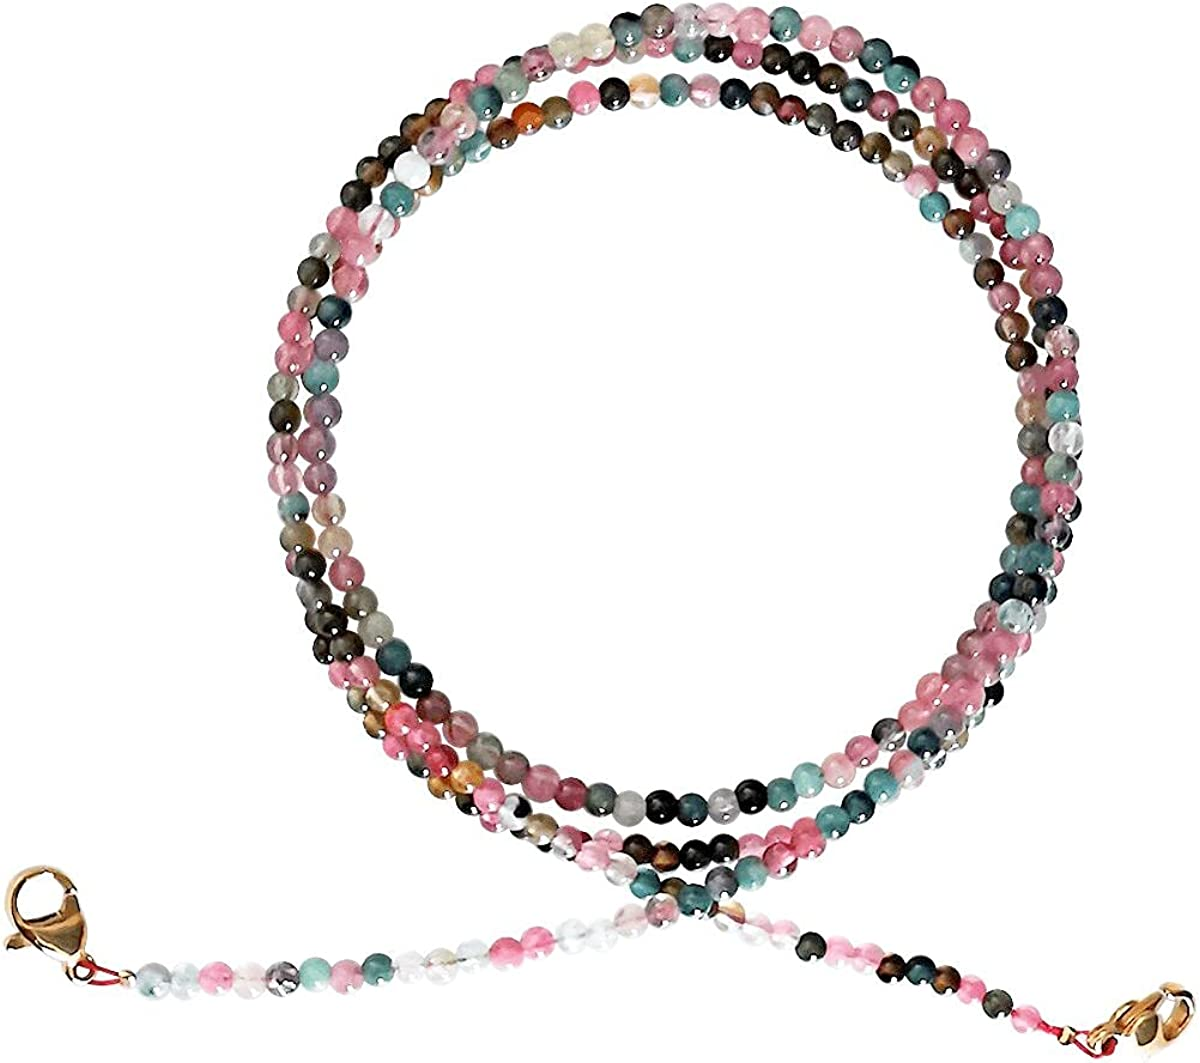 Qordelia Natural Multi Colors Tourmaline Gemstone 2mm Round Beads Glasses Chain Lanyard Necklace Strap Eyeglass Chains